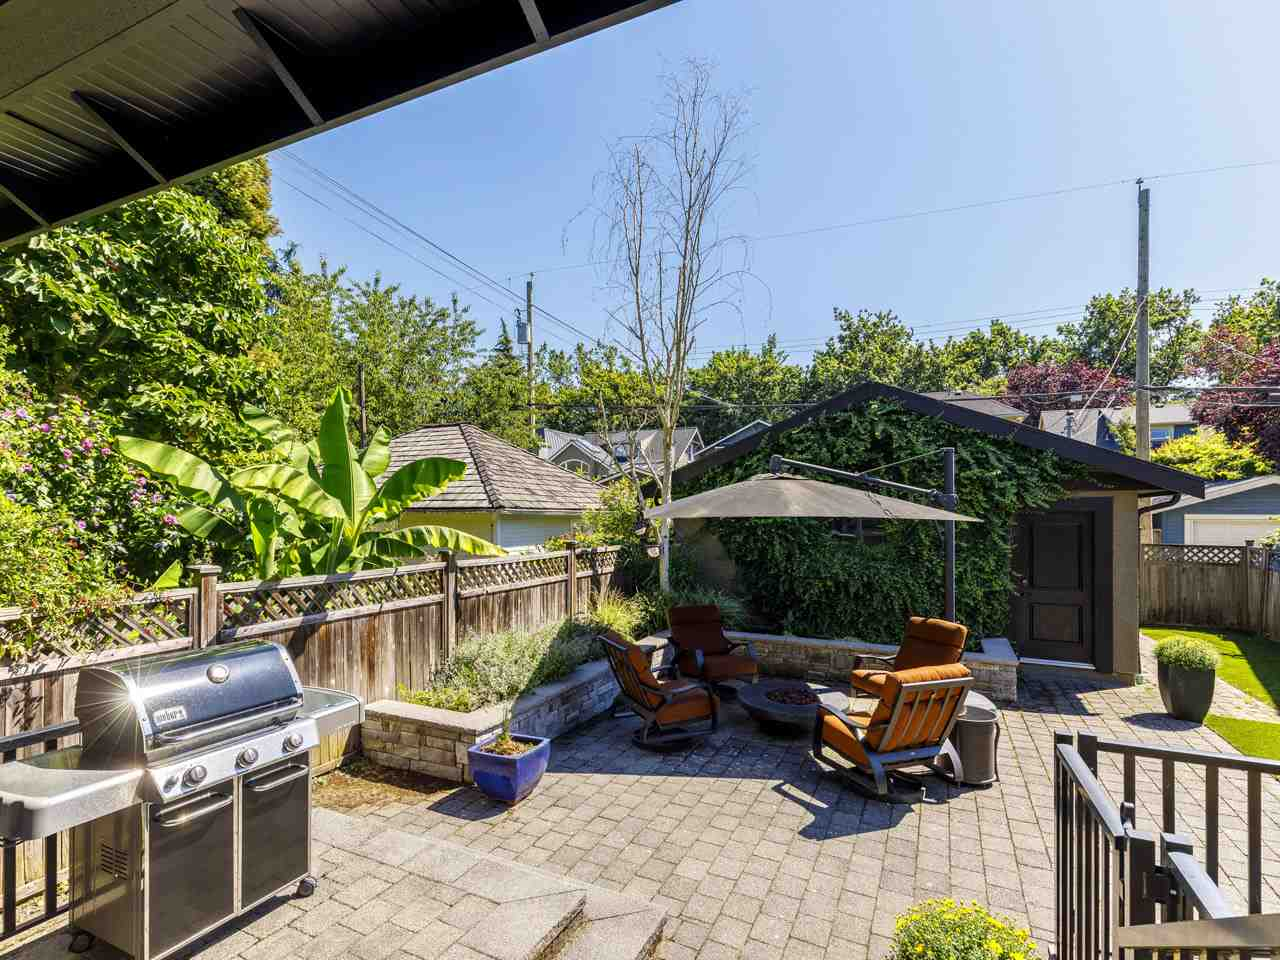 3040 W 12 AVENUE - Kitsilano House/Single Family for sale, 5 Bedrooms (R2482160) - #37